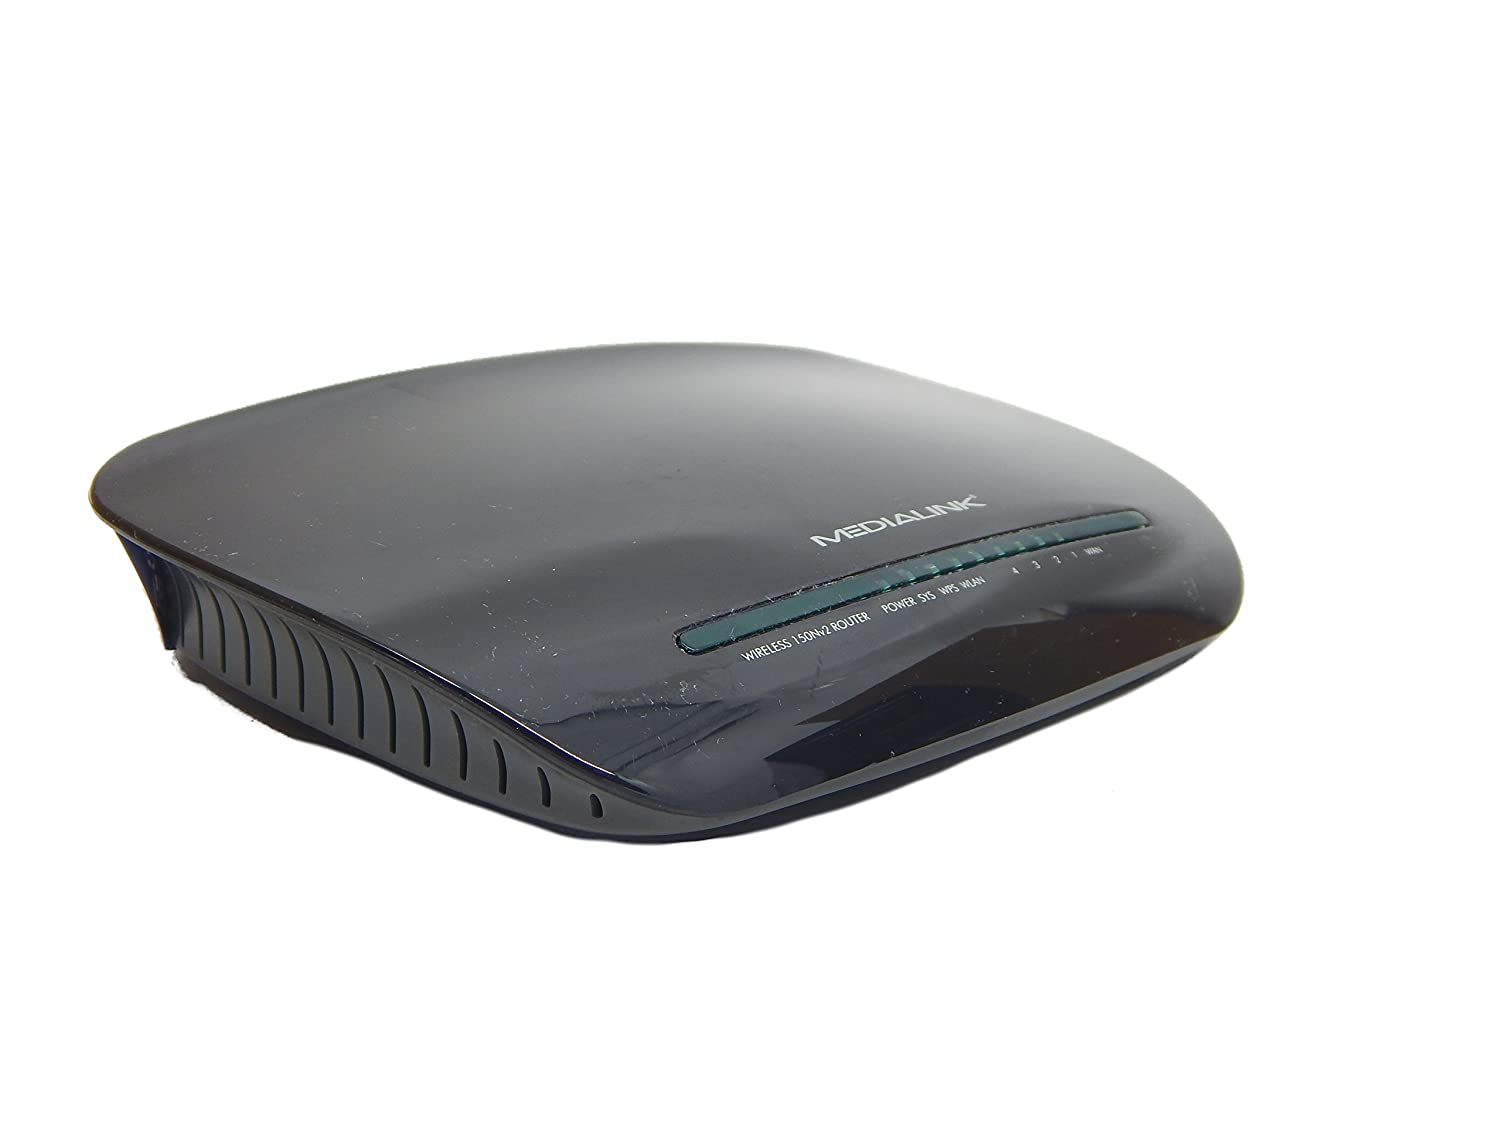 MEDIALINK WIRELESS N ROUTER DRIVER FOR WINDOWS 8